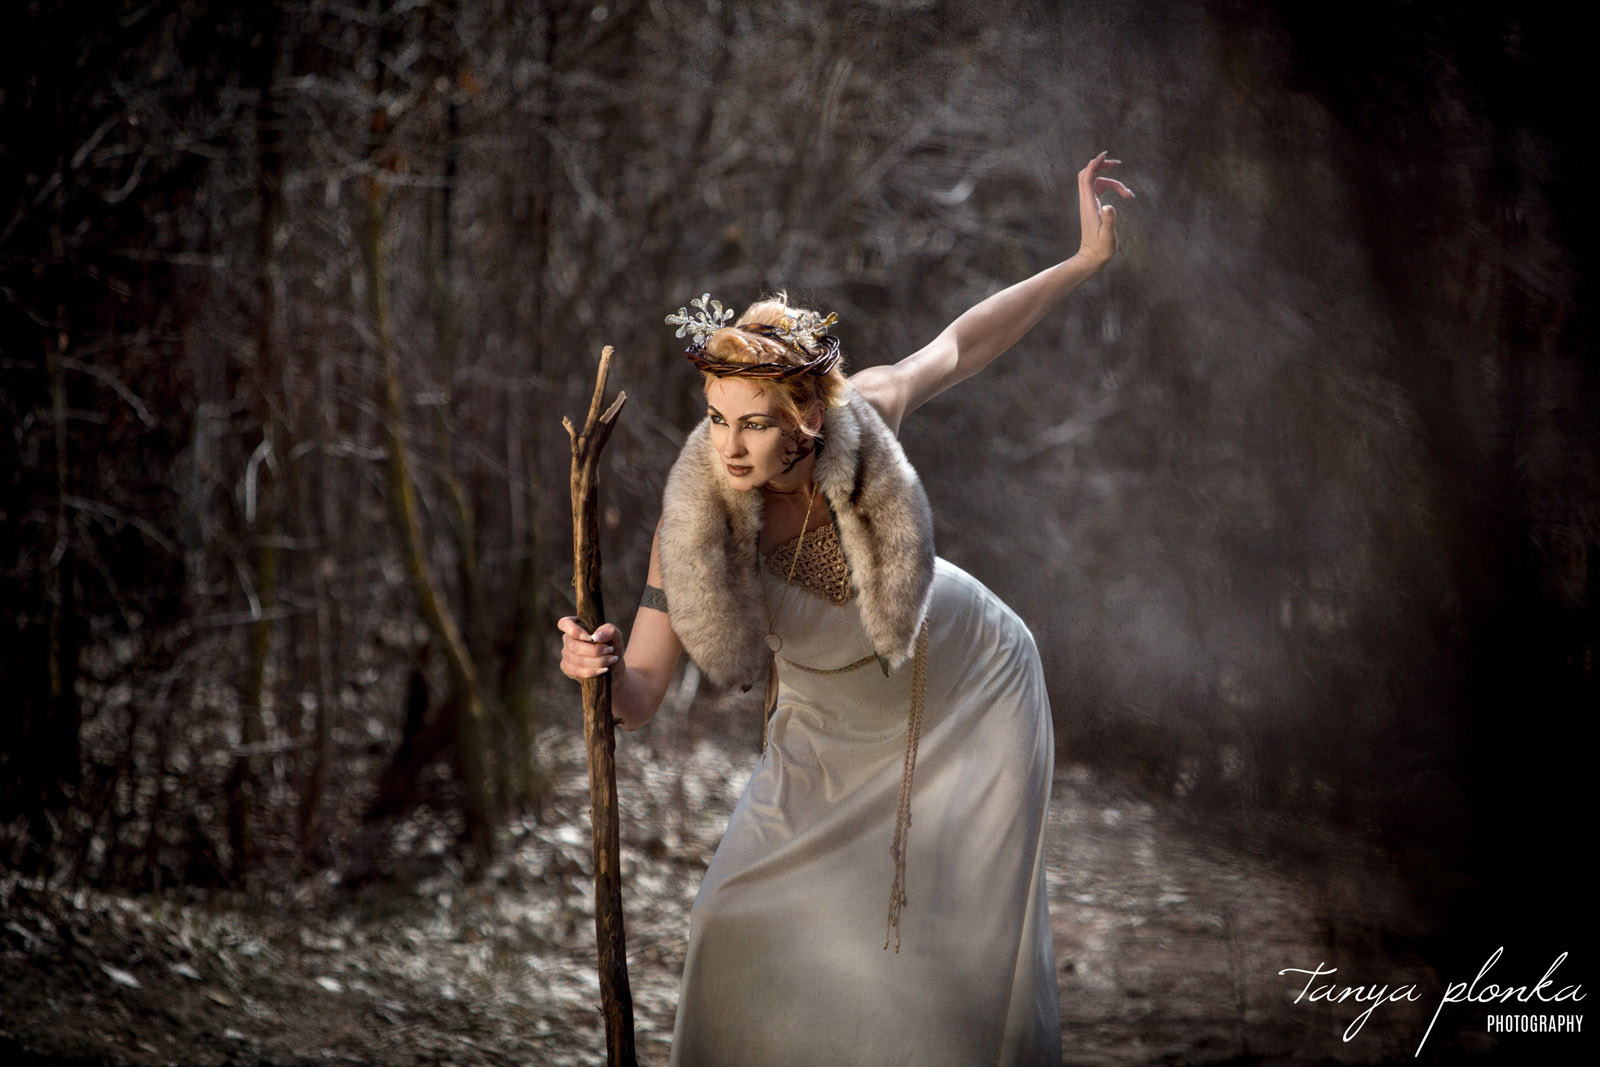 woman dressed in white poses with wood staff in dry winter woods